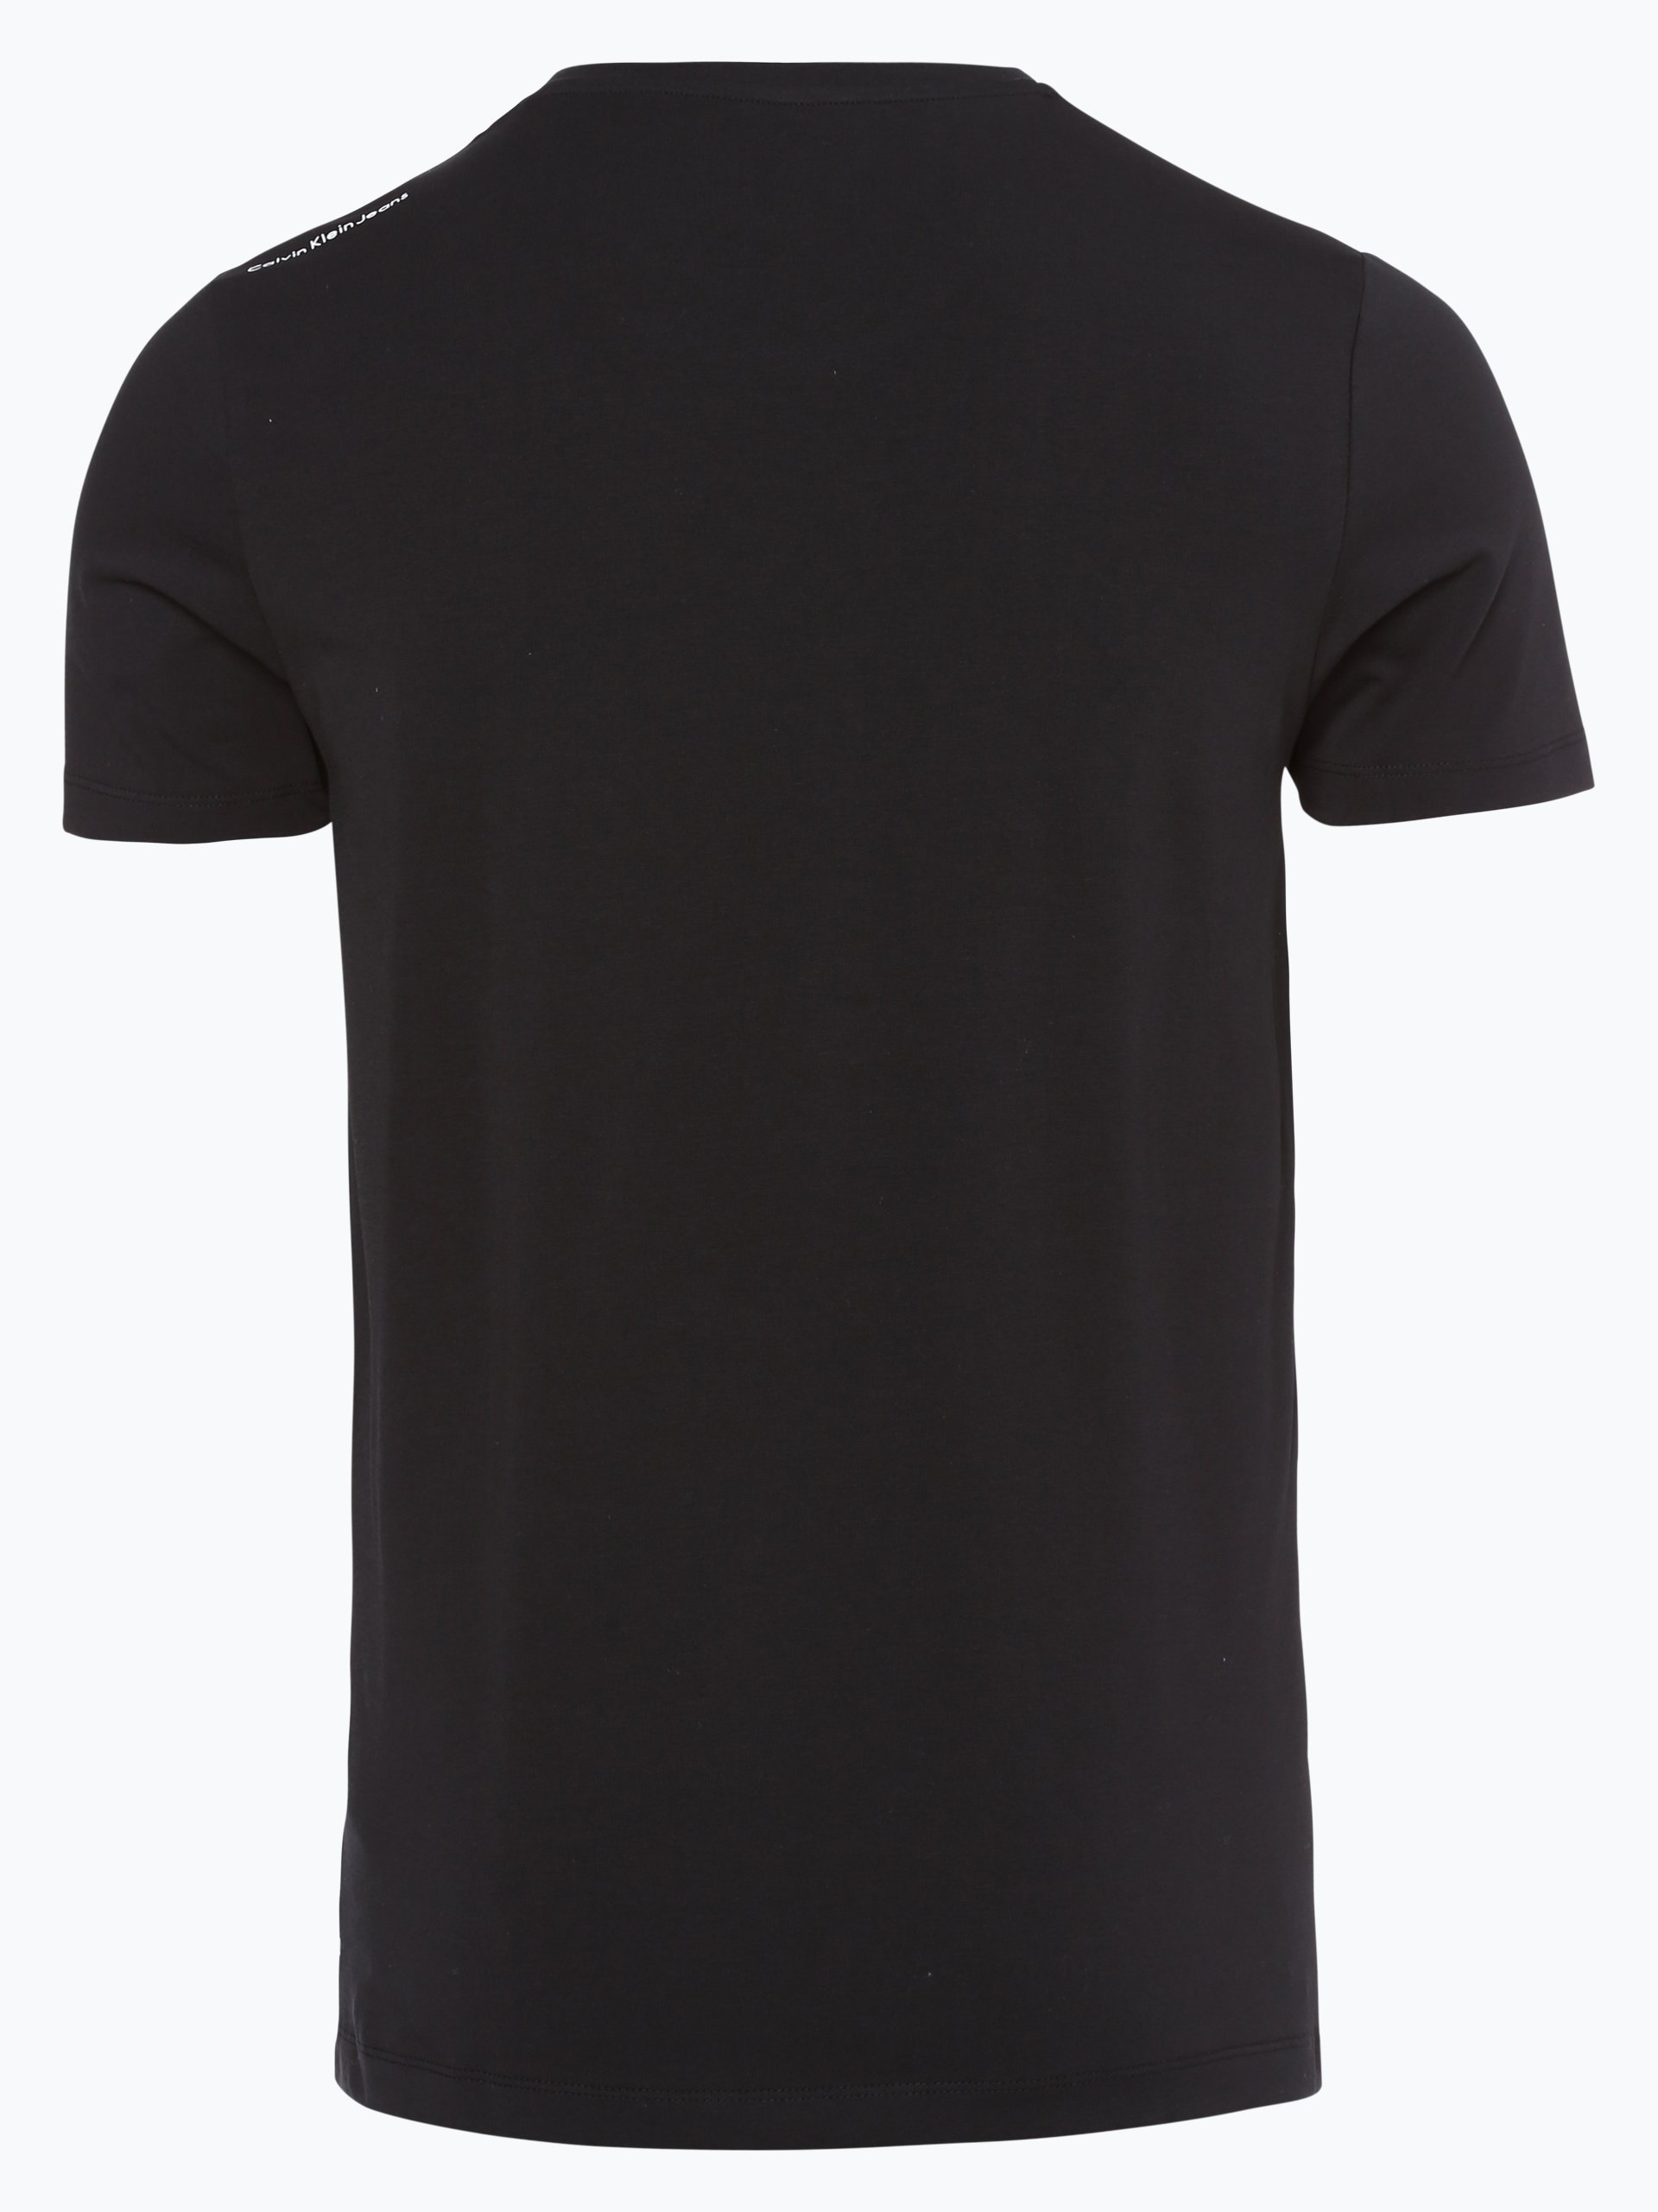 calvin klein jeans herren t shirt schwarz gemustert online. Black Bedroom Furniture Sets. Home Design Ideas